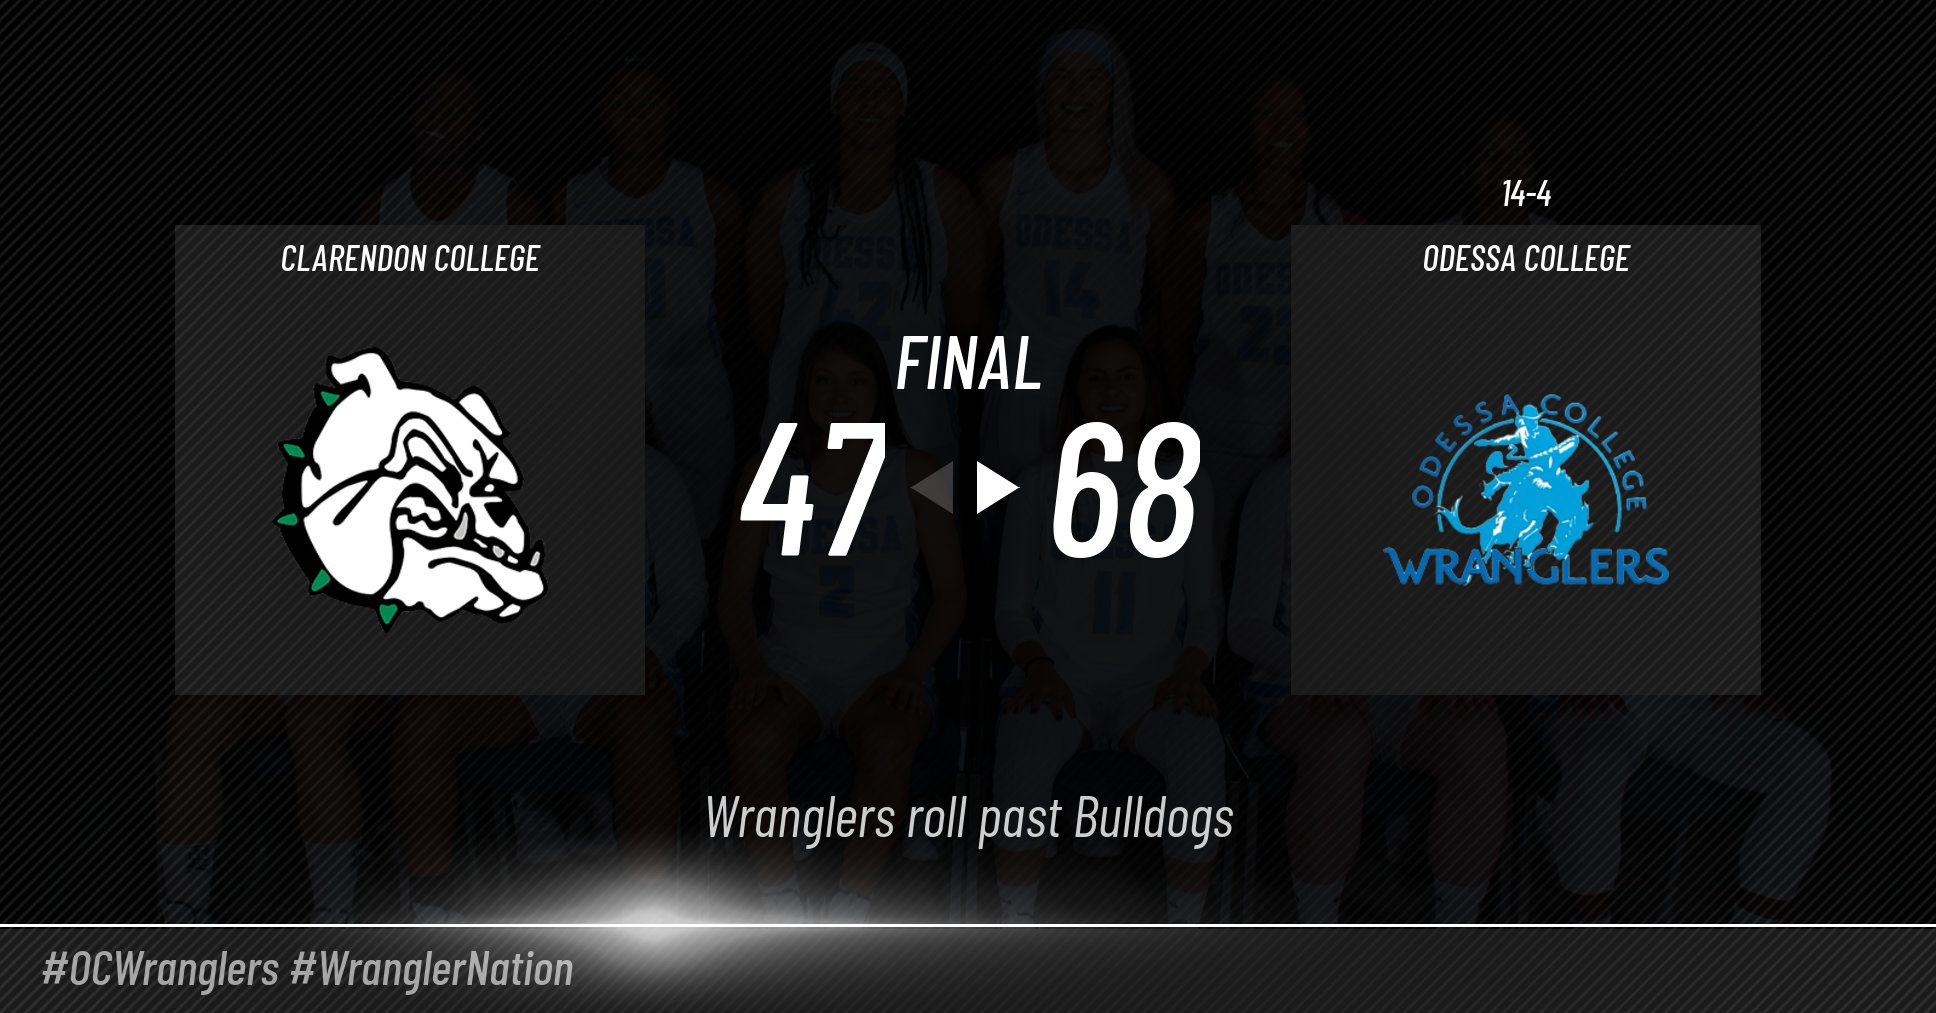 Wrangler Women pull away from Clarendon